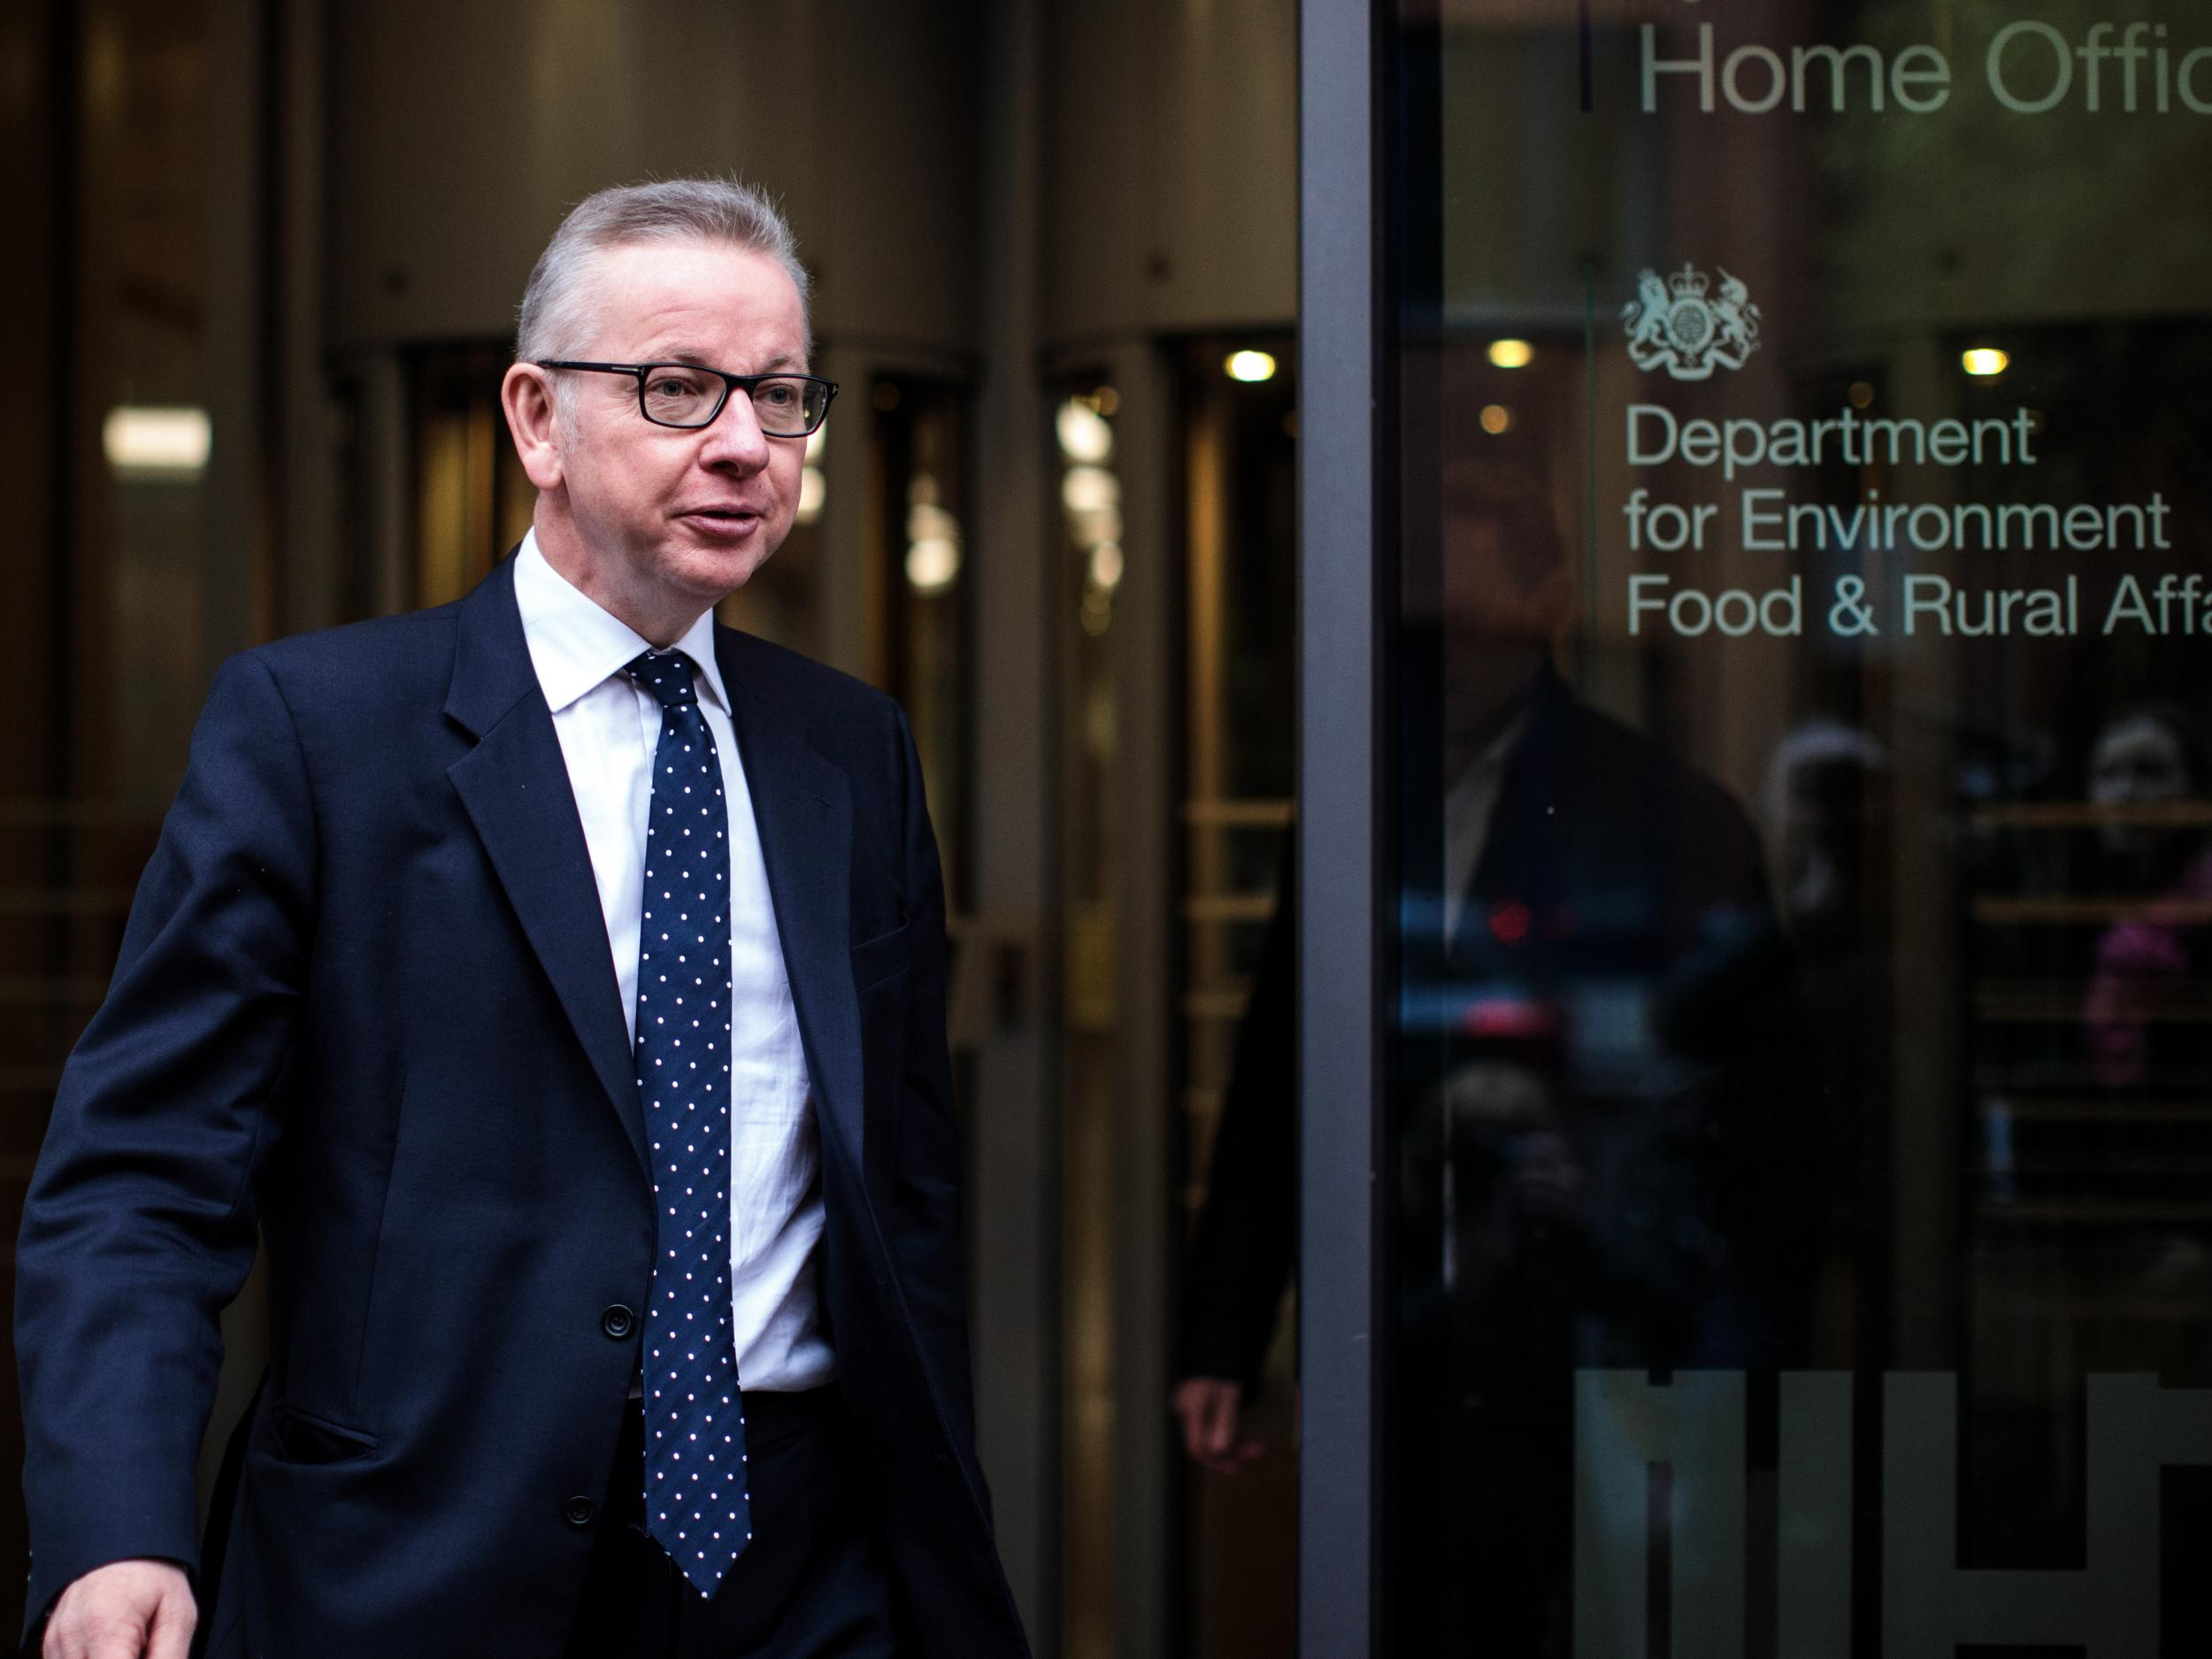 Michael Gove suggests Philip Hammond is wrong about post-Brexit economic damage